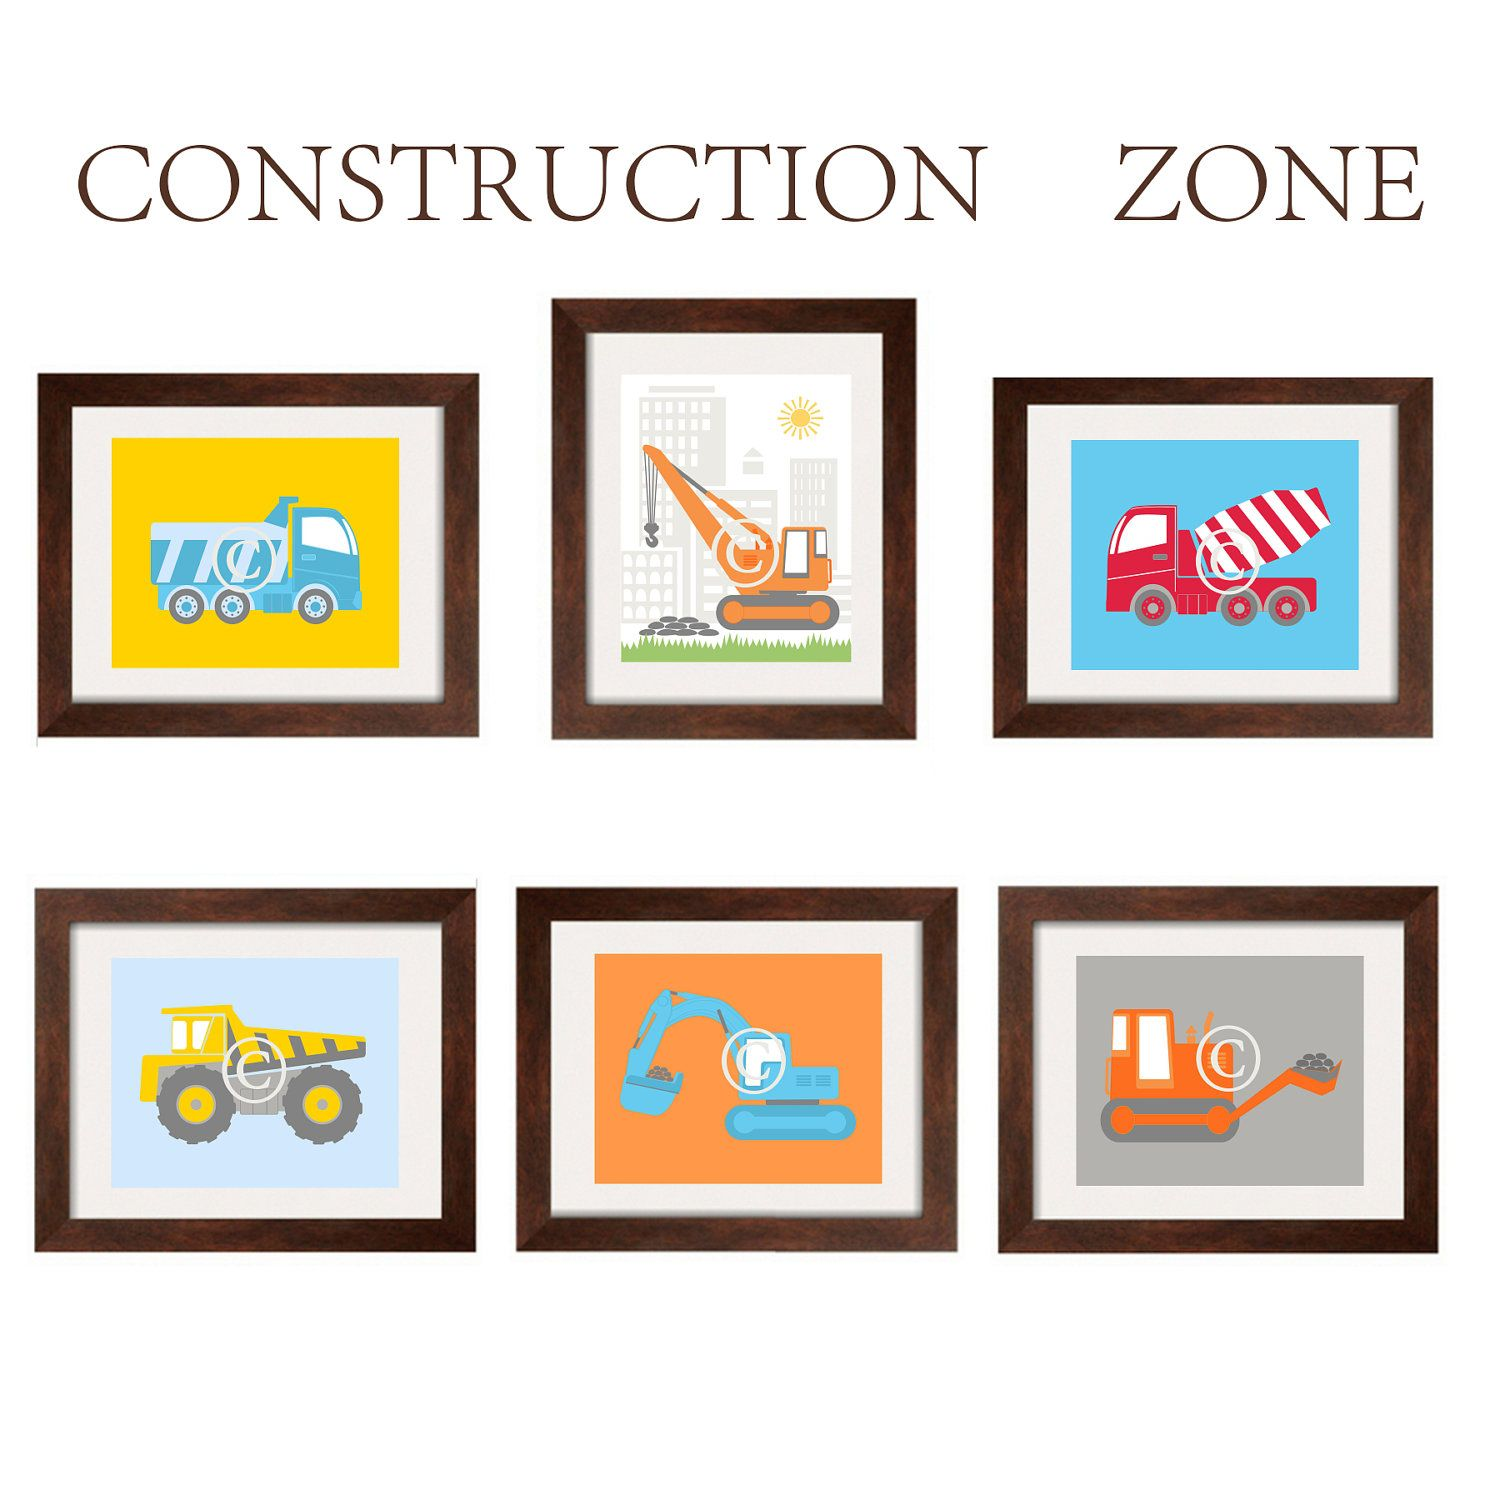 Construction Vehicles Nursery and Toddler Boy Art 6 prints for Construction Zone bedding from Land of Nod 8X10 by YassisPlace. $85.00, via Etsy.